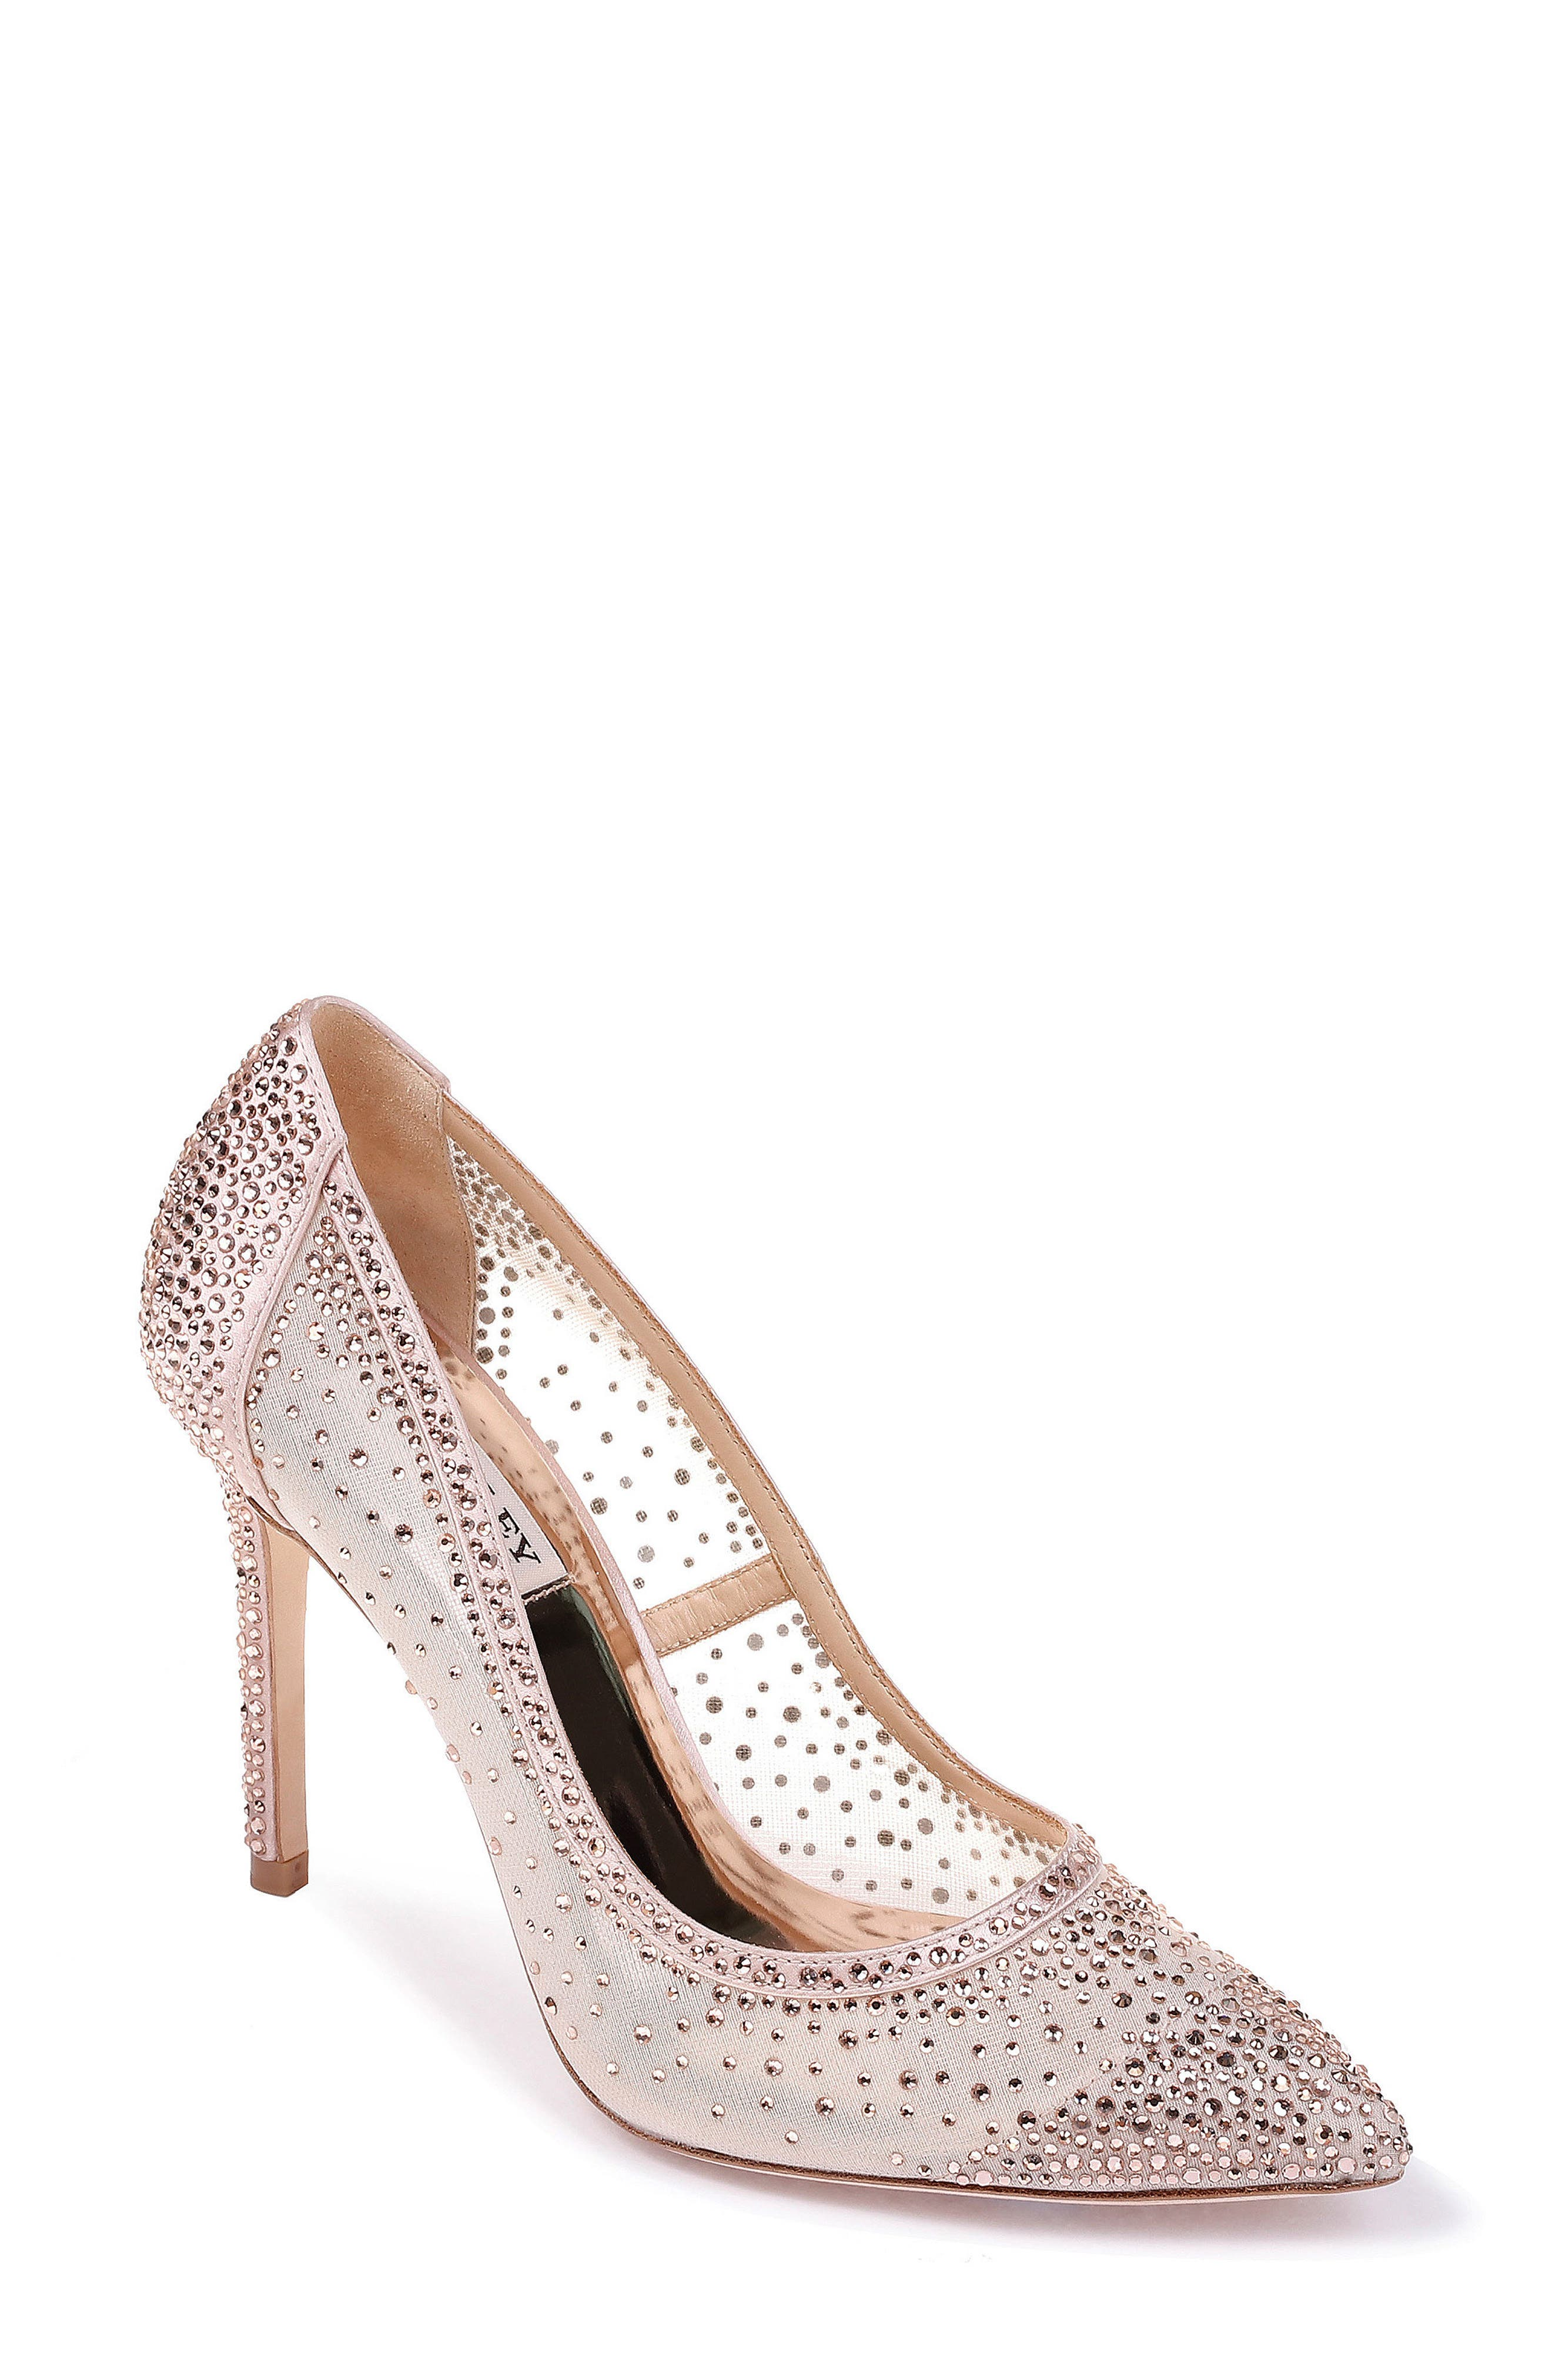 Weslee Pointy Toe Pump,                         Main,                         color, BLUSH SATIN